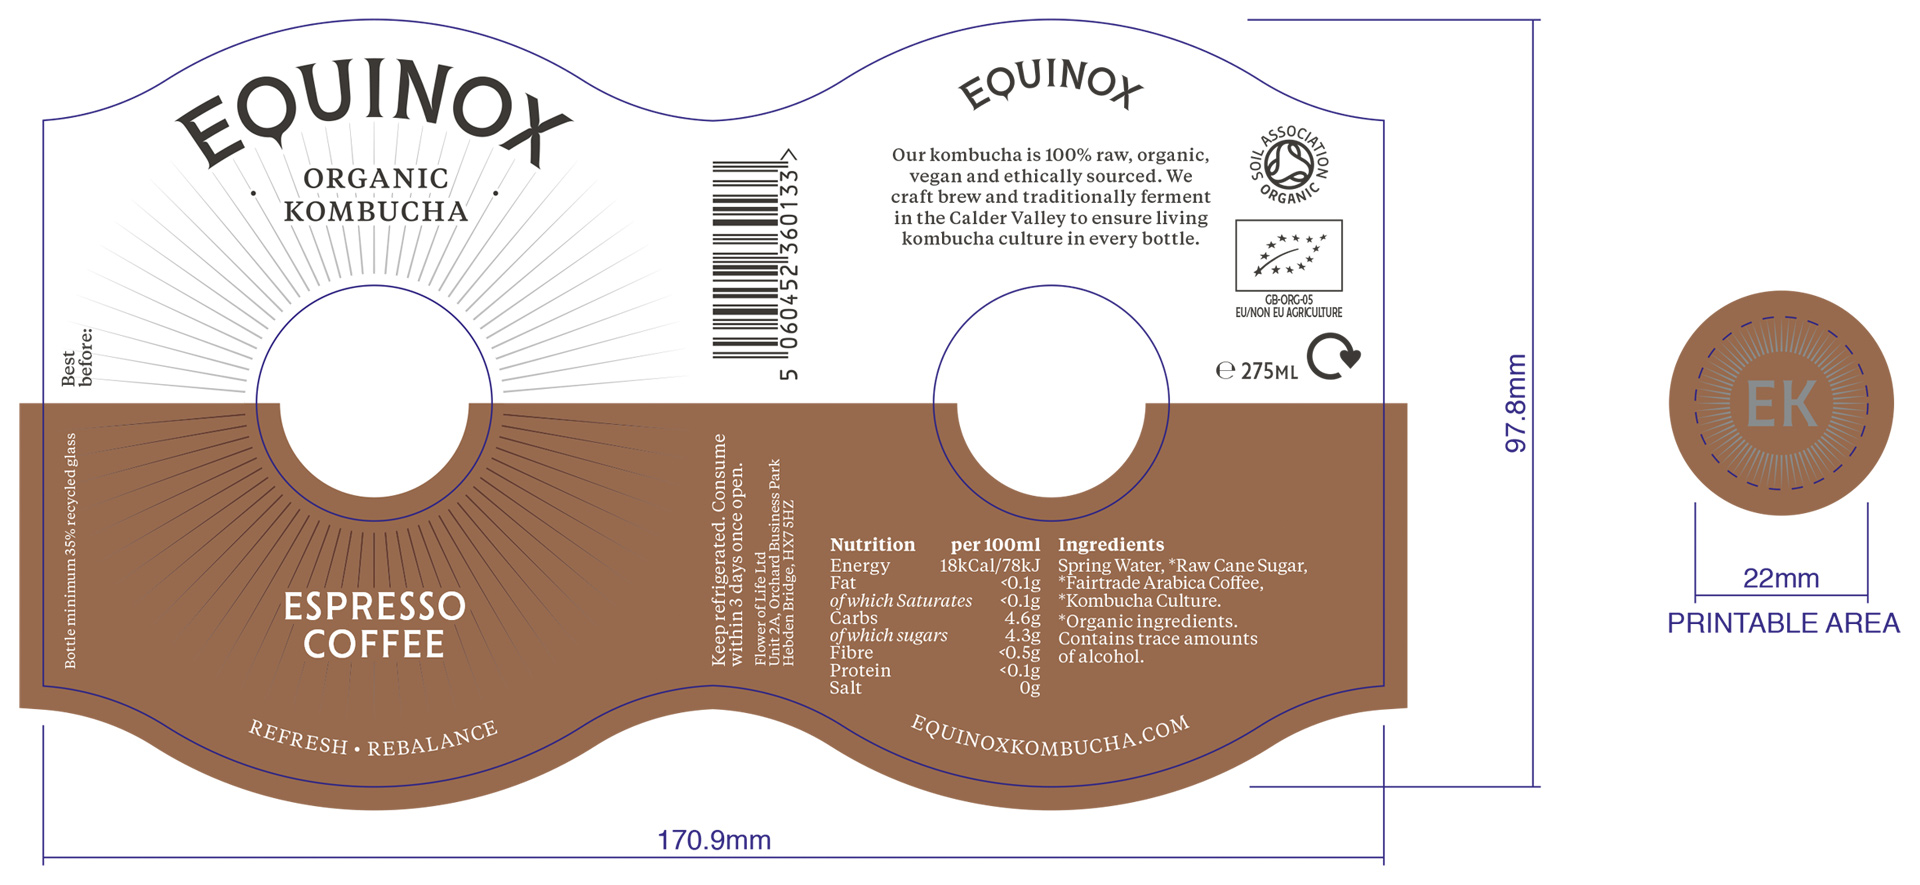 food-packaging-artwork-repro-equinox-1